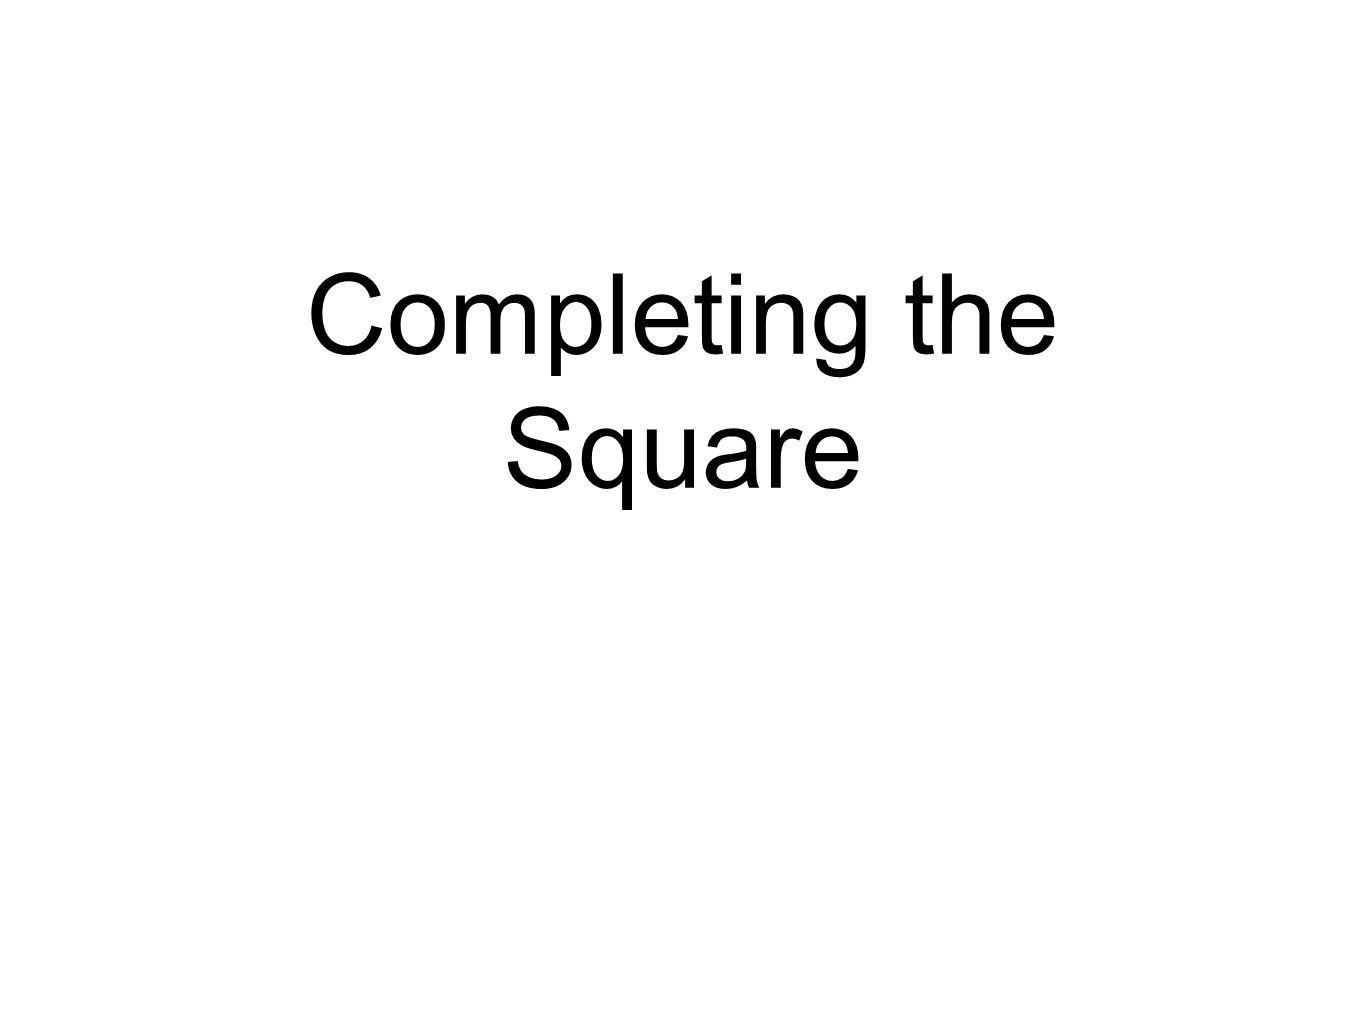 1pleting The Square